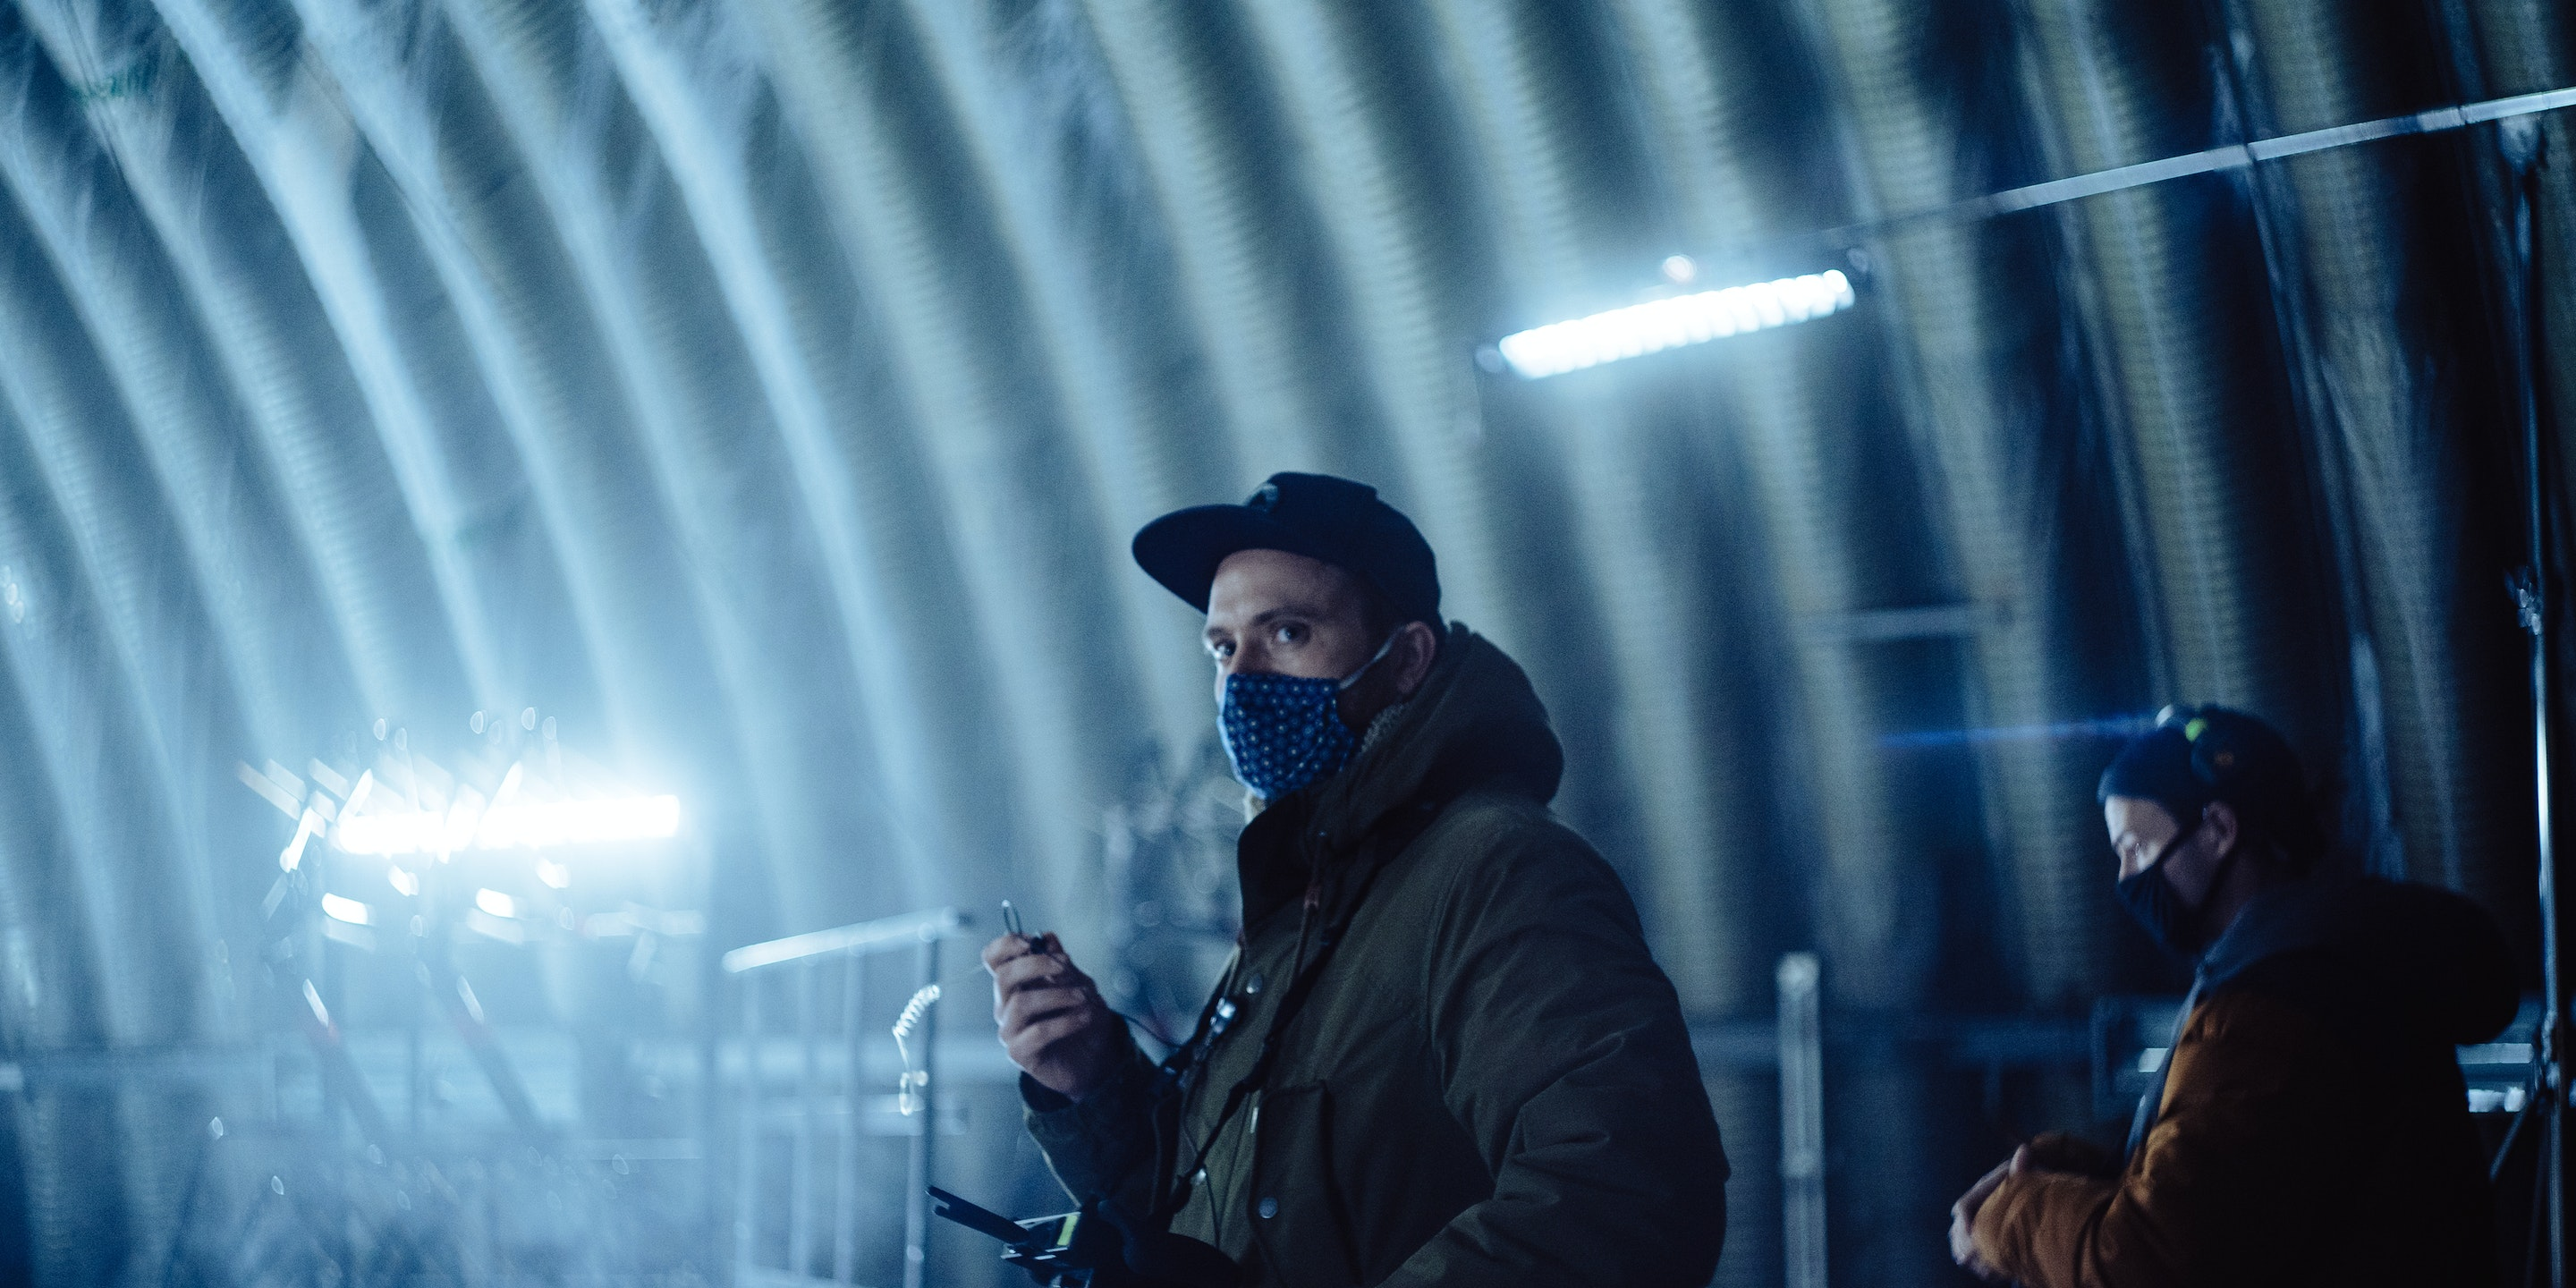 Interview   Jerom Fischer on 'futuristic' directing style and his vision coming to life